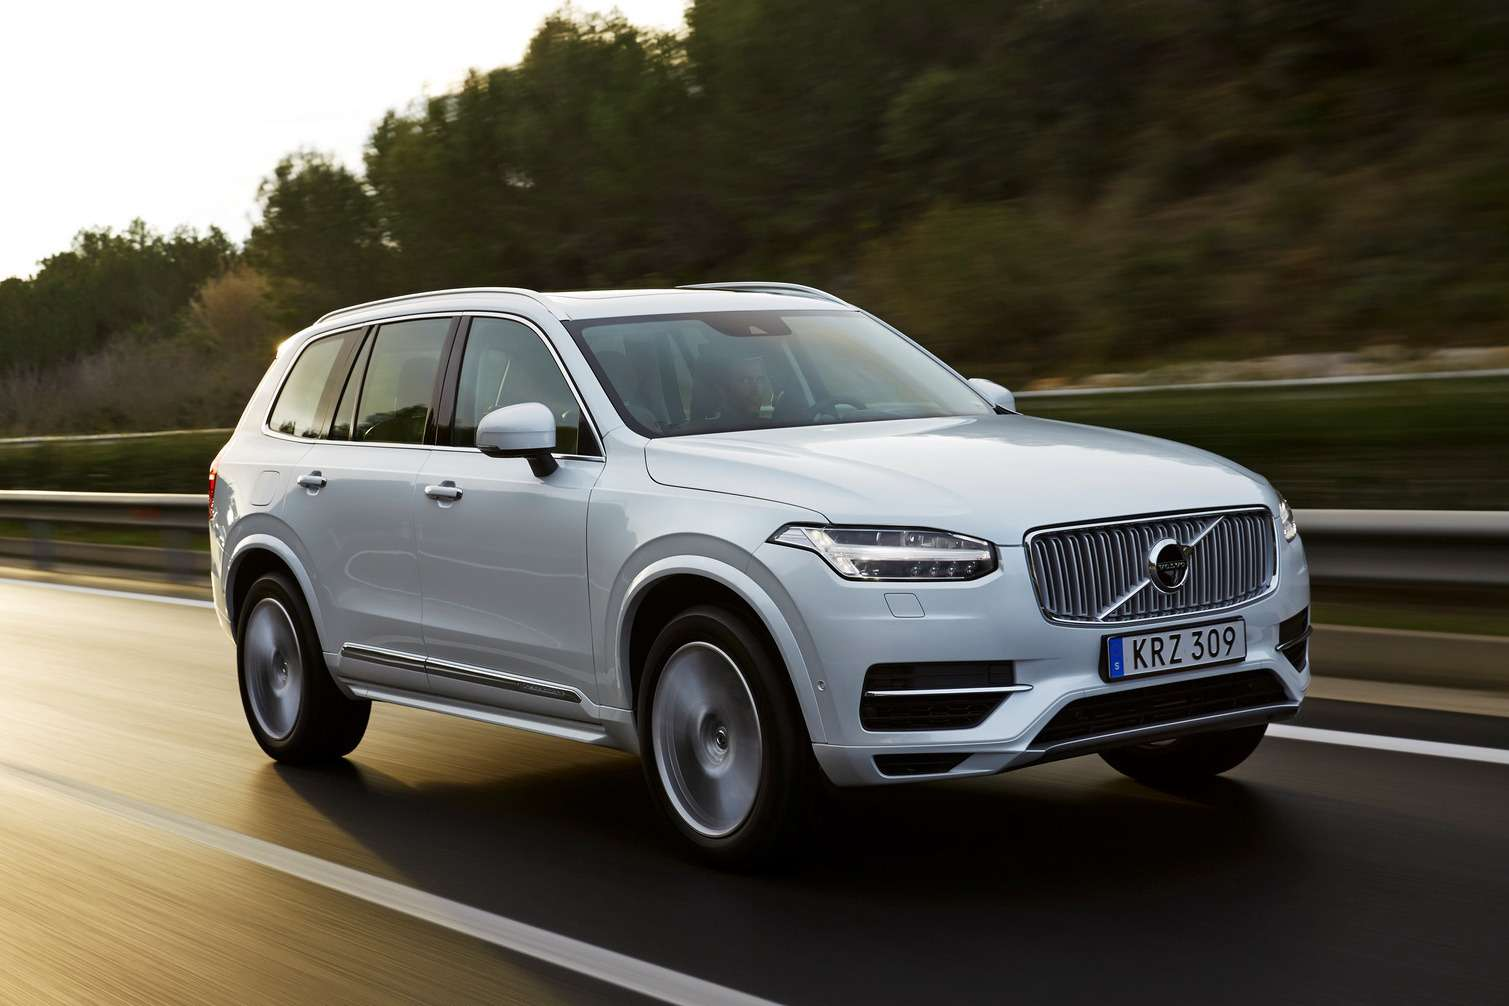 Thenew Volvo XC90 with the T8engine driven inTarragona, Spain.